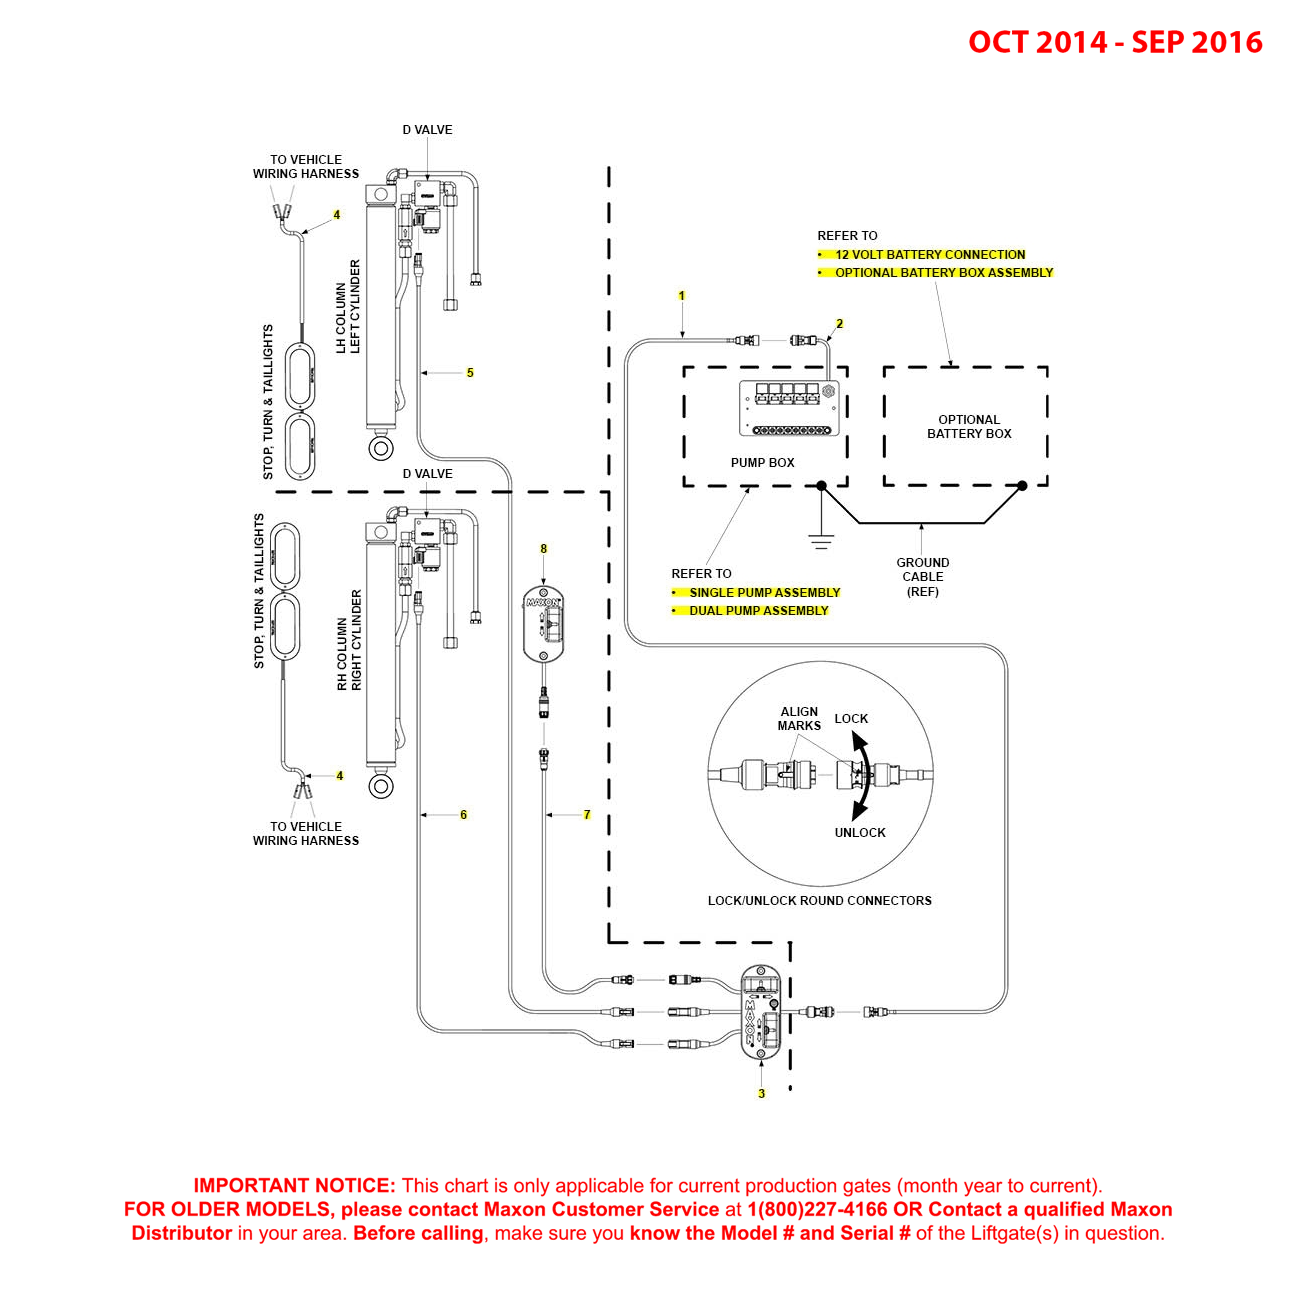 BMR (Oct 2014 - Sep 2016) Electrical Systems Diagram